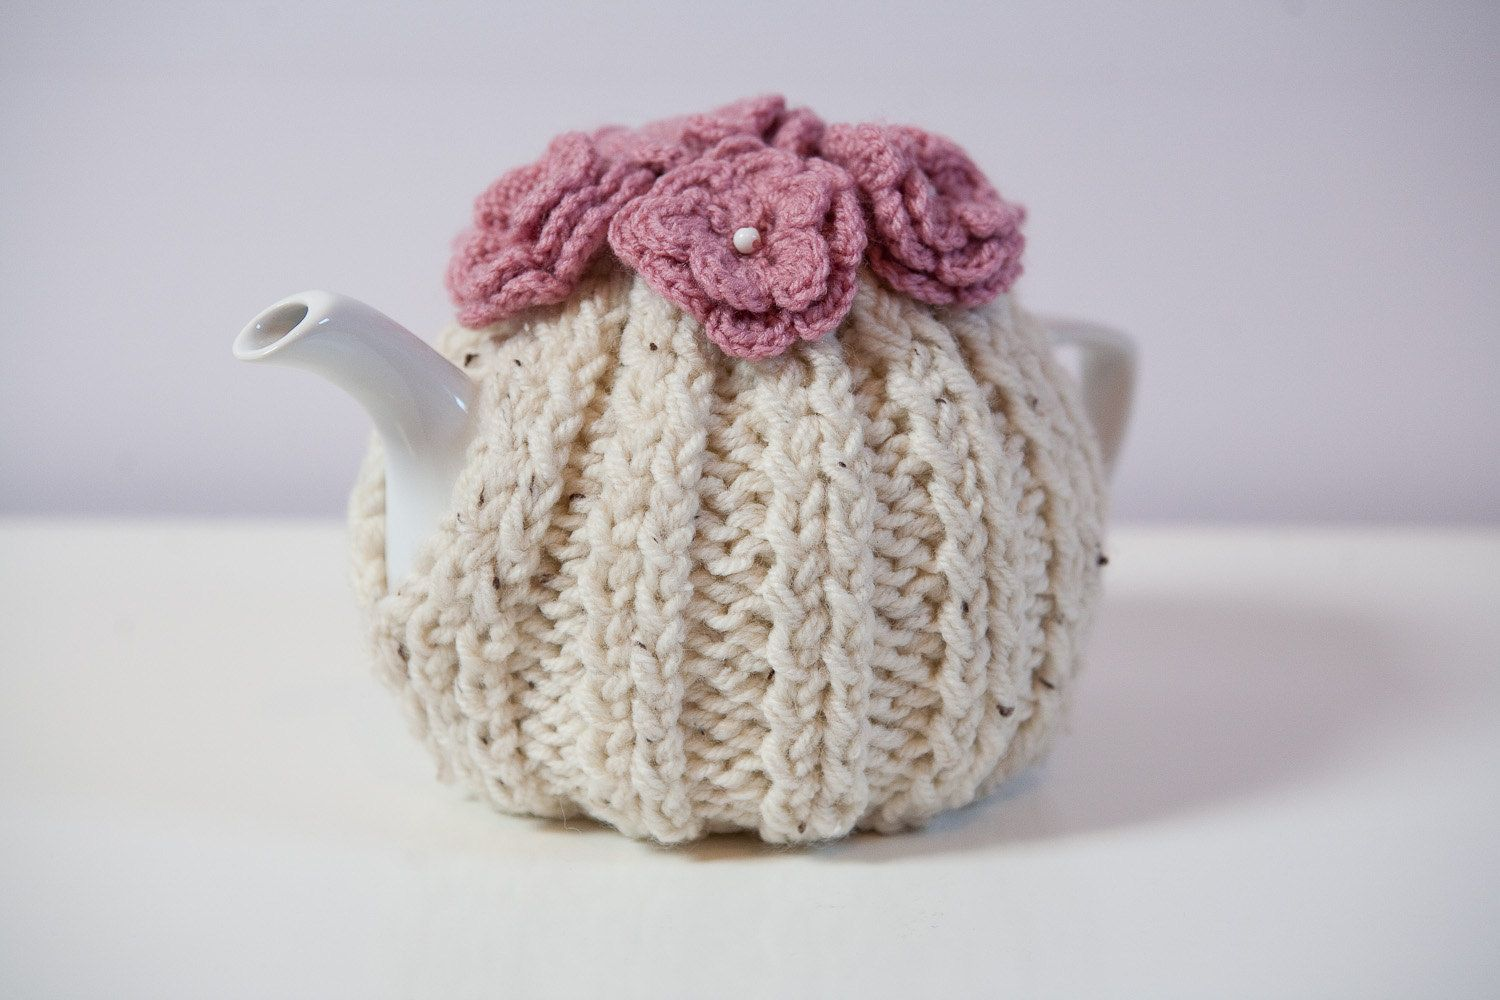 Hand Knitted Tea Cosy Patterns : Cream coloured hand knitted tea cosy with crocheted flowers on top teapot c...